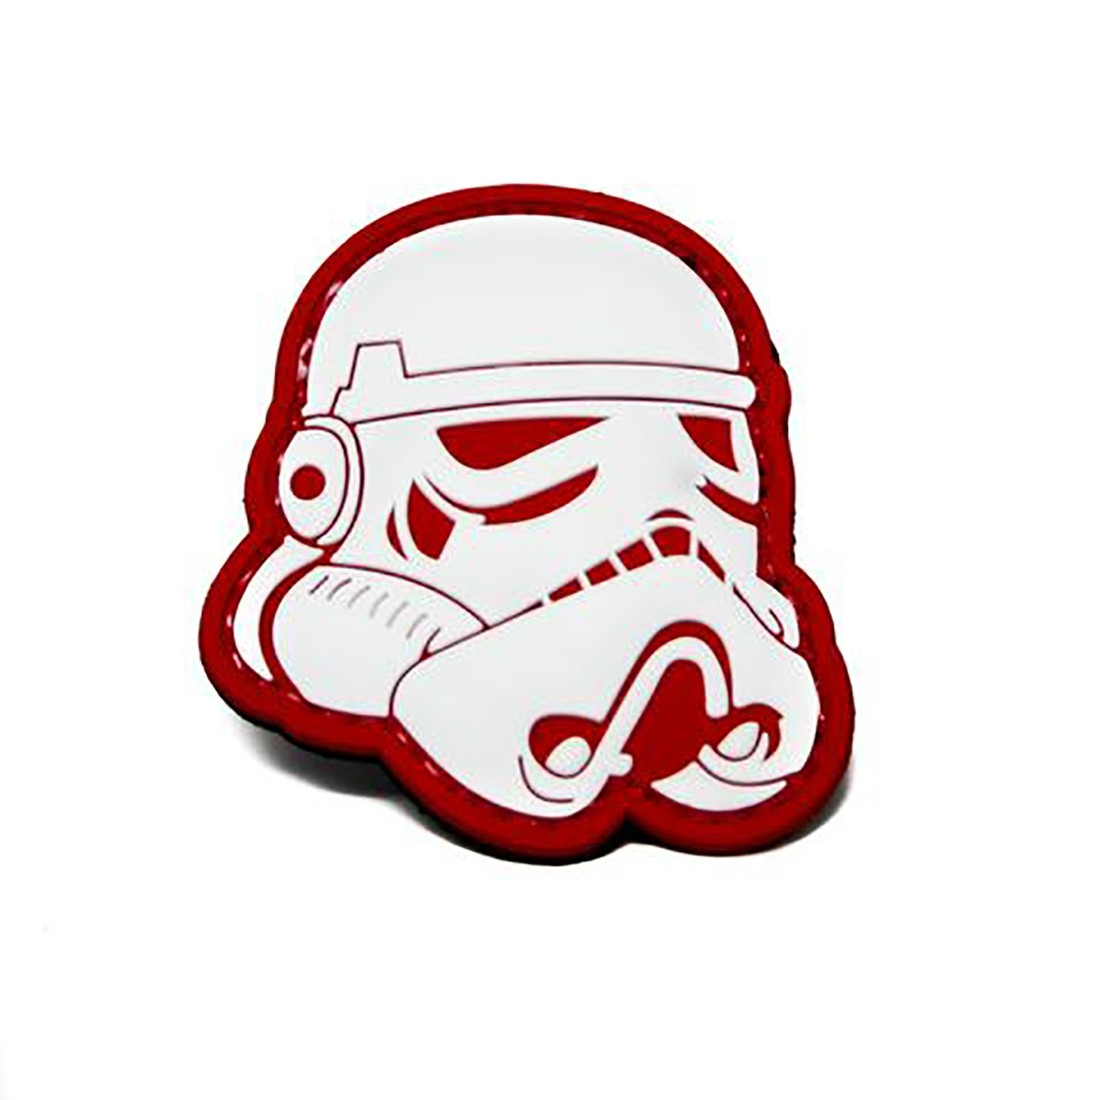 STAR WARS STORMTROOPER RED Tactical Rubber Velcro Patches